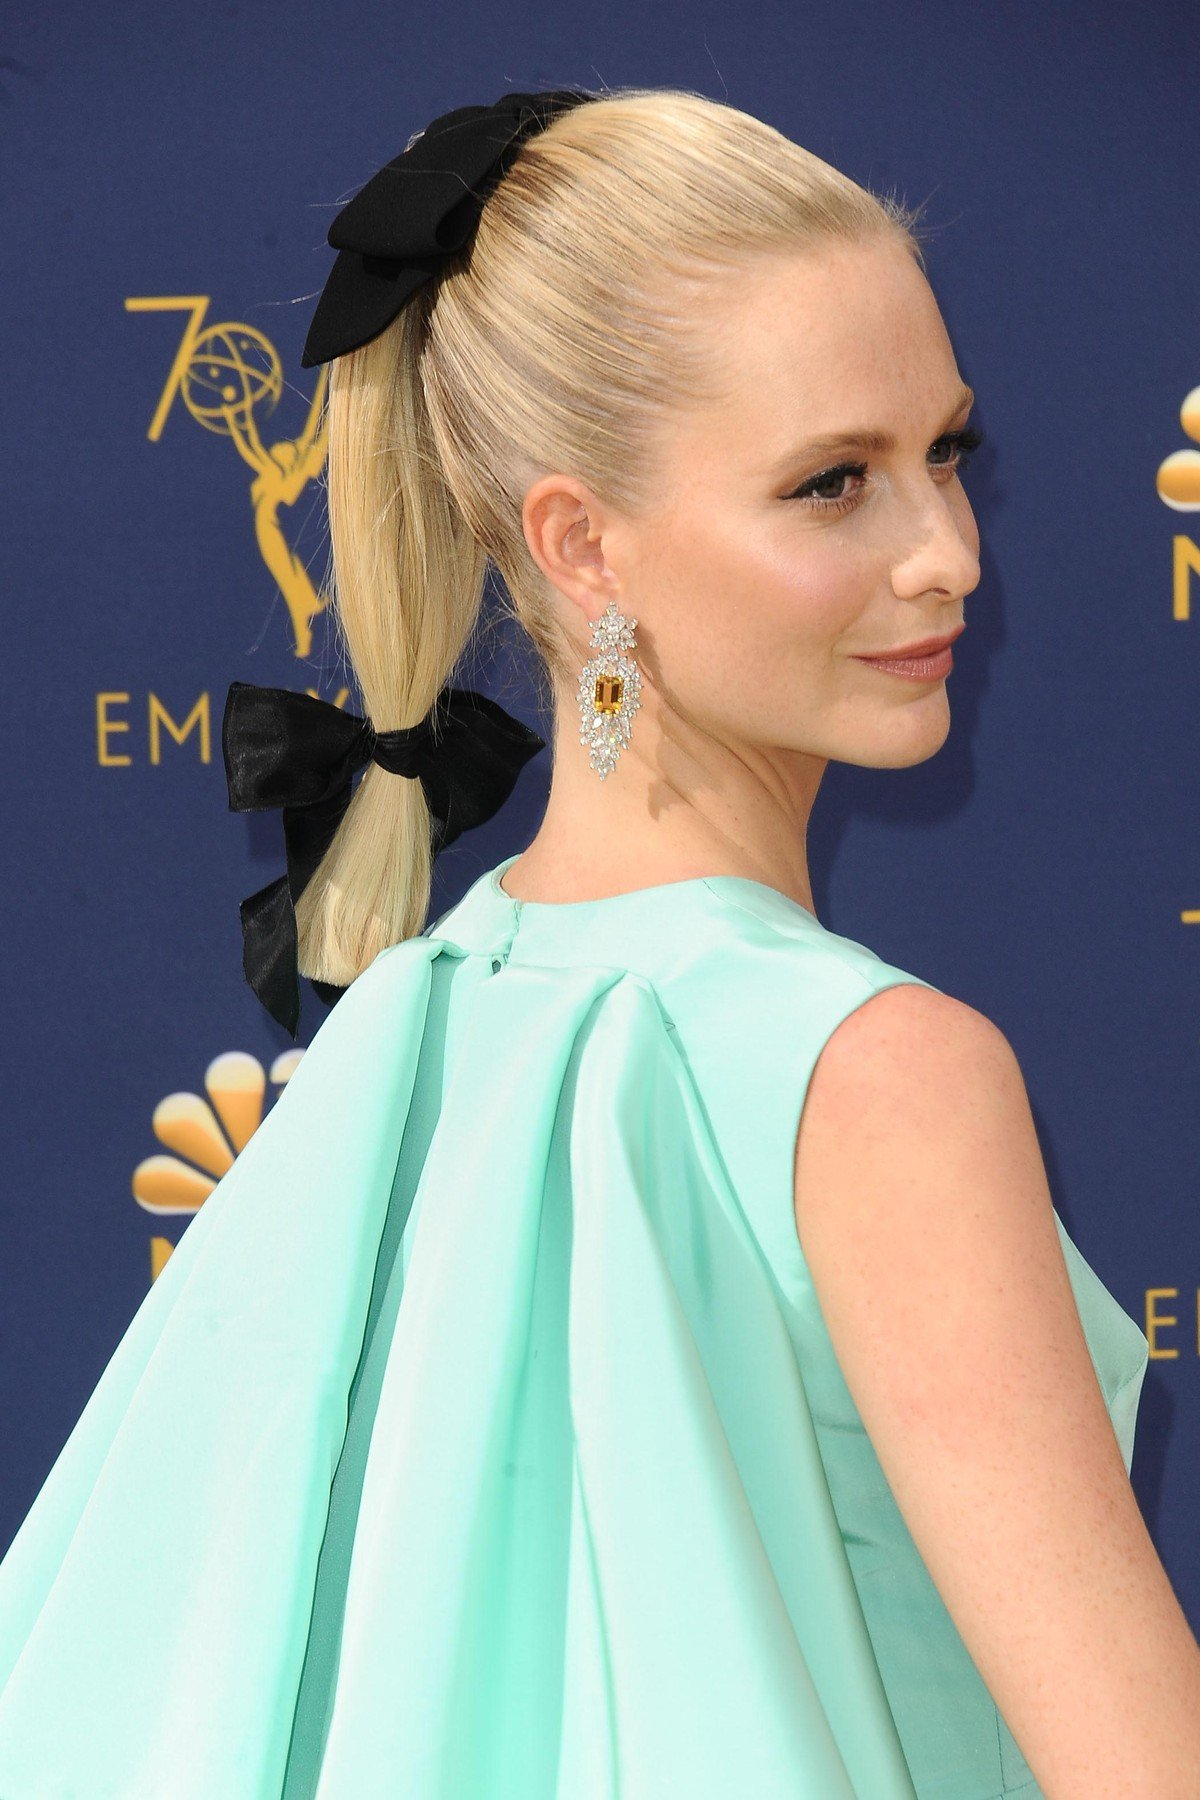 , Los Angeles, CA -20180917 - The 70th Primetime Emmy Awards Red Carpet, at Microsoft Theater  -PICTURED:  Poppy Delevingne -, Image: 387151408, License: Rights-managed, Restrictions: , Model Release: no, Credit line: Profimedia, INSTAR Images